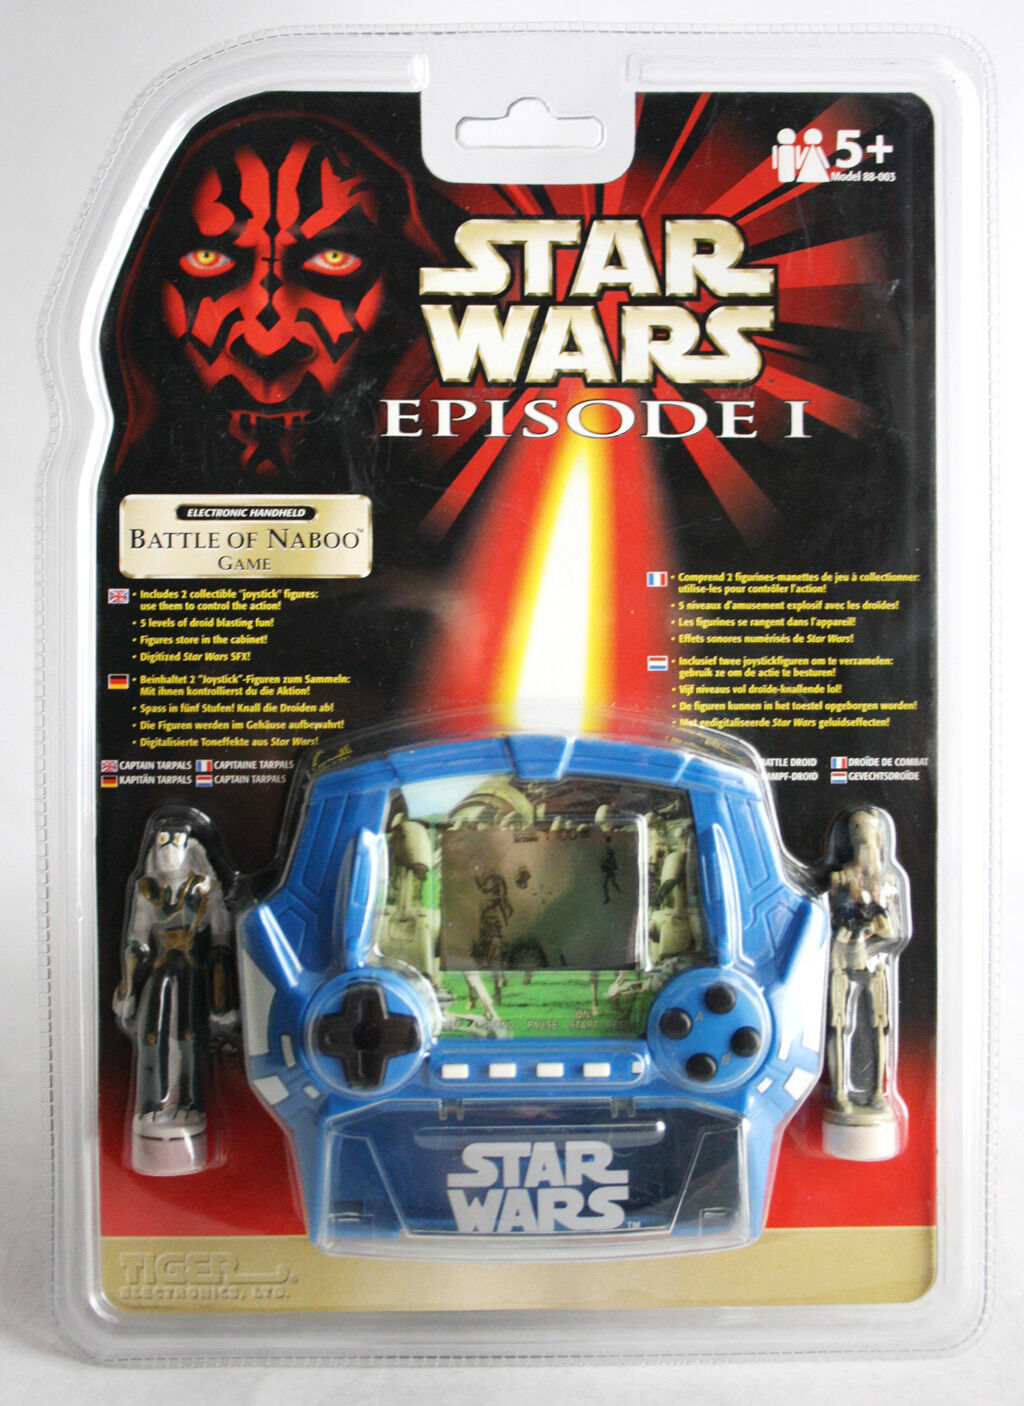 RARE 1999 STAR WARS EPISODE I BATTLE OF NABOO HANDHELD LCD GAME TIGER NEW